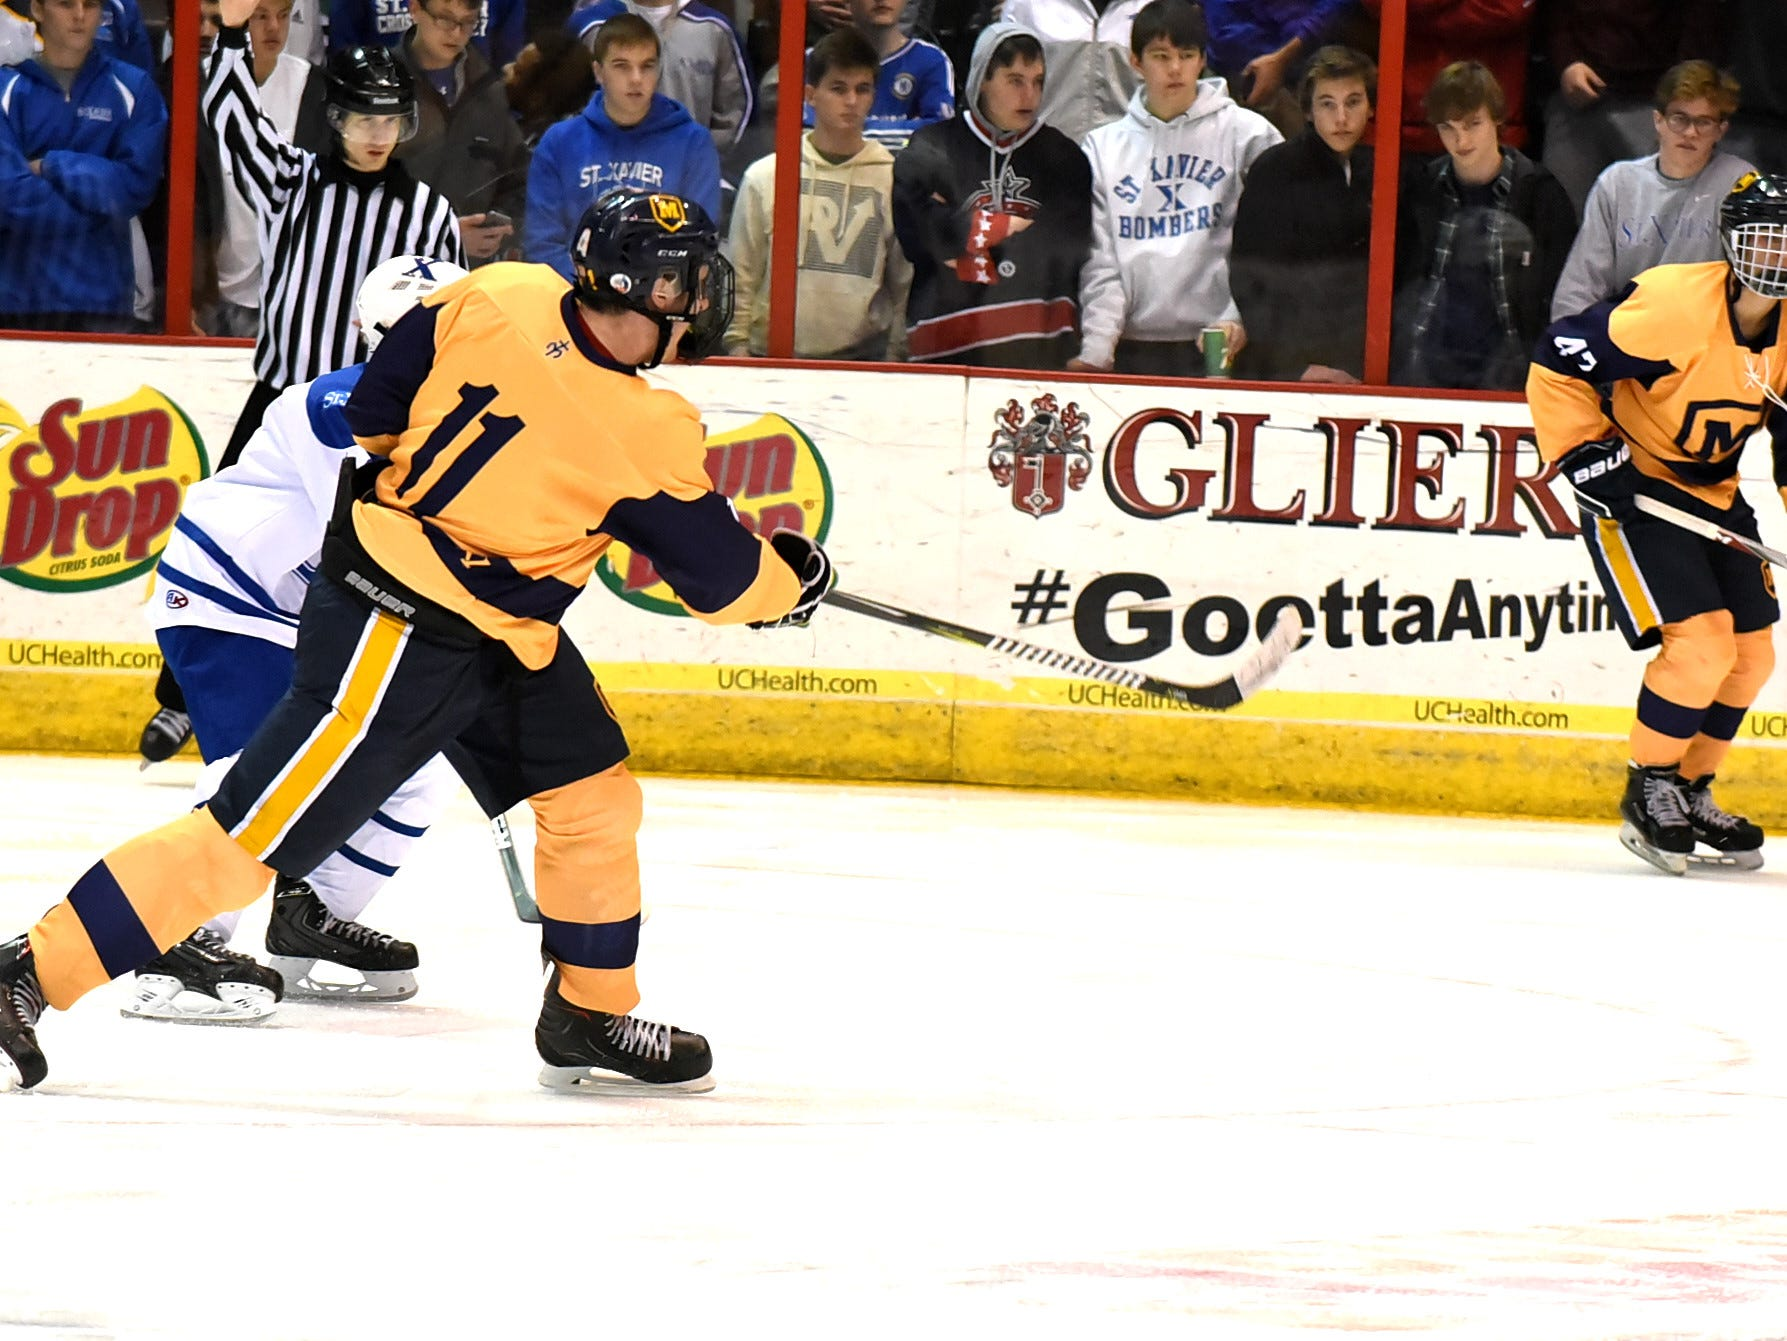 Shay Black (11) drives home the winning goal for Moeller in their 3-2 win over St. Xavier at US Bank Arena, December 7, 2018.